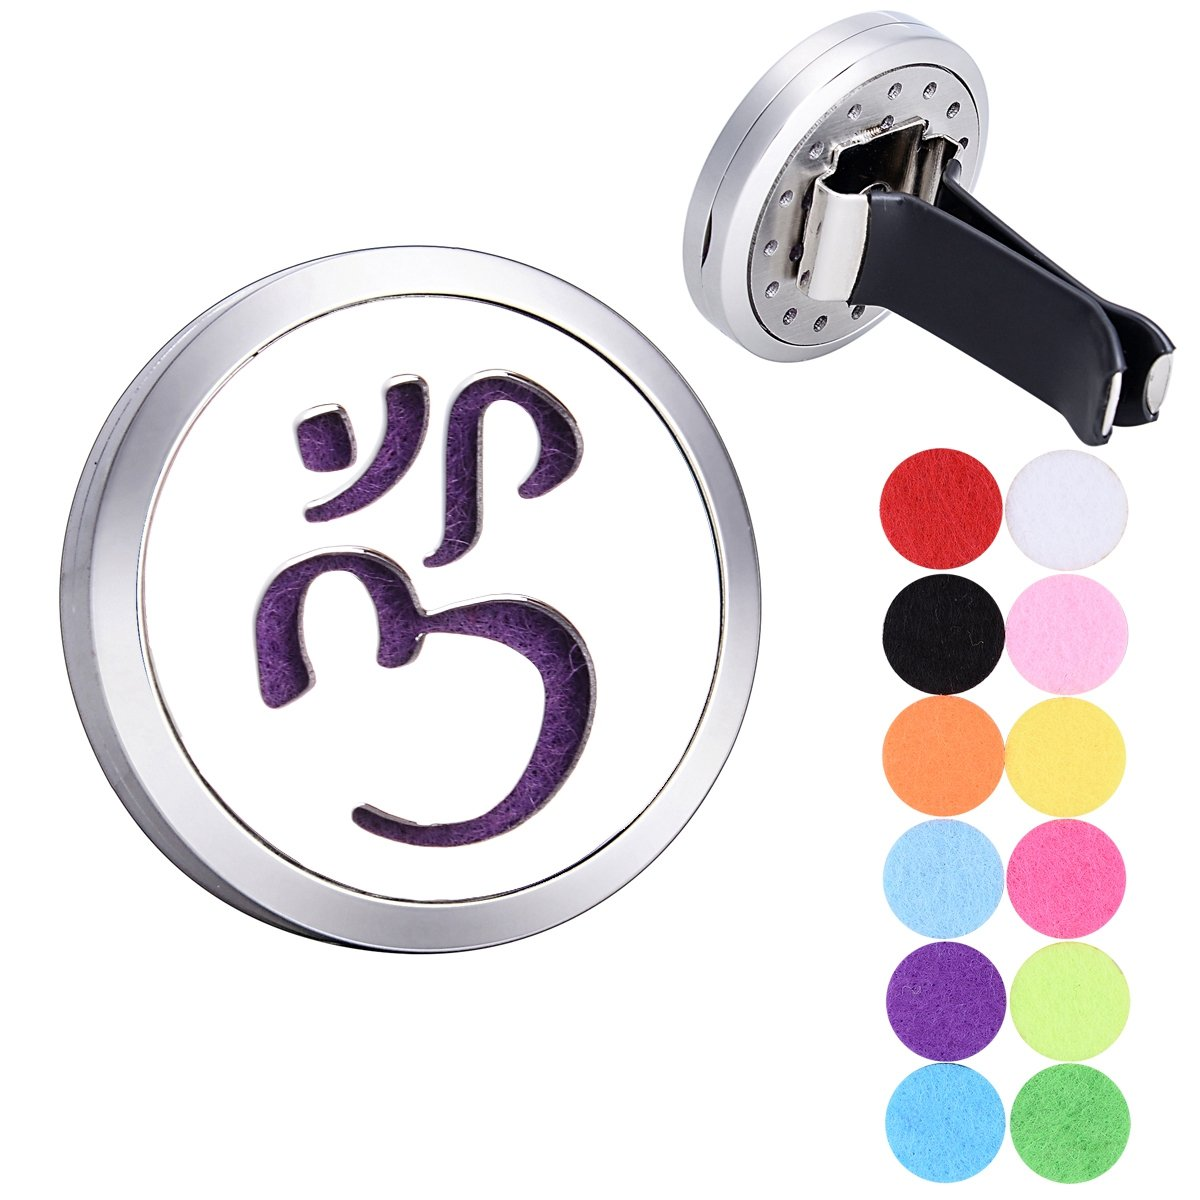 ohm om aum yoga Car Air Freshener Aromatherapy Essential Oil Diffuser Stainless Steel Locket Supreme glory